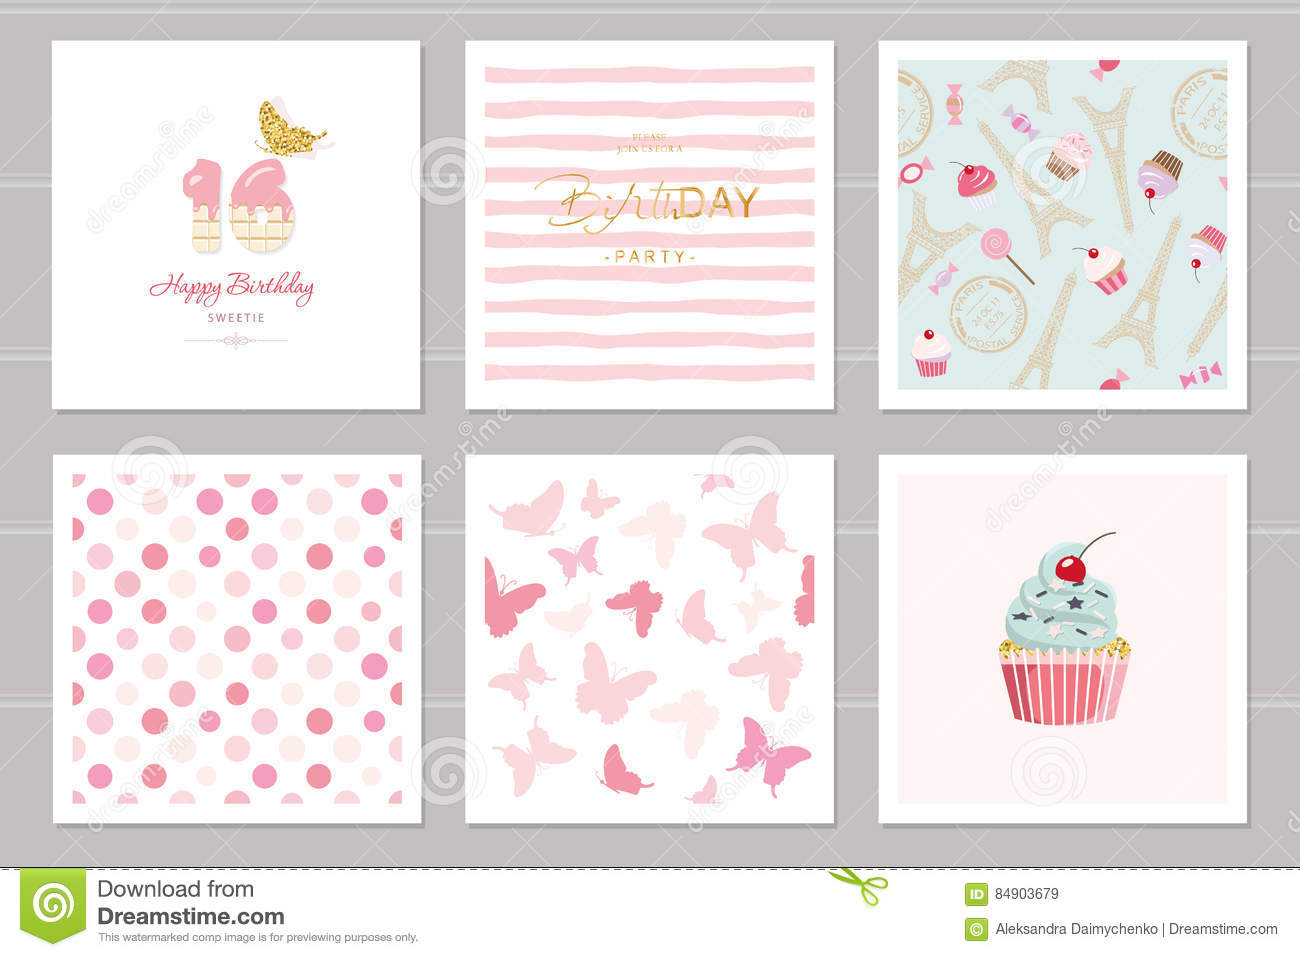 download birthday cards set for teenage girls including seamless patterns in pastel pink sweet - Teenage Birthday Cards